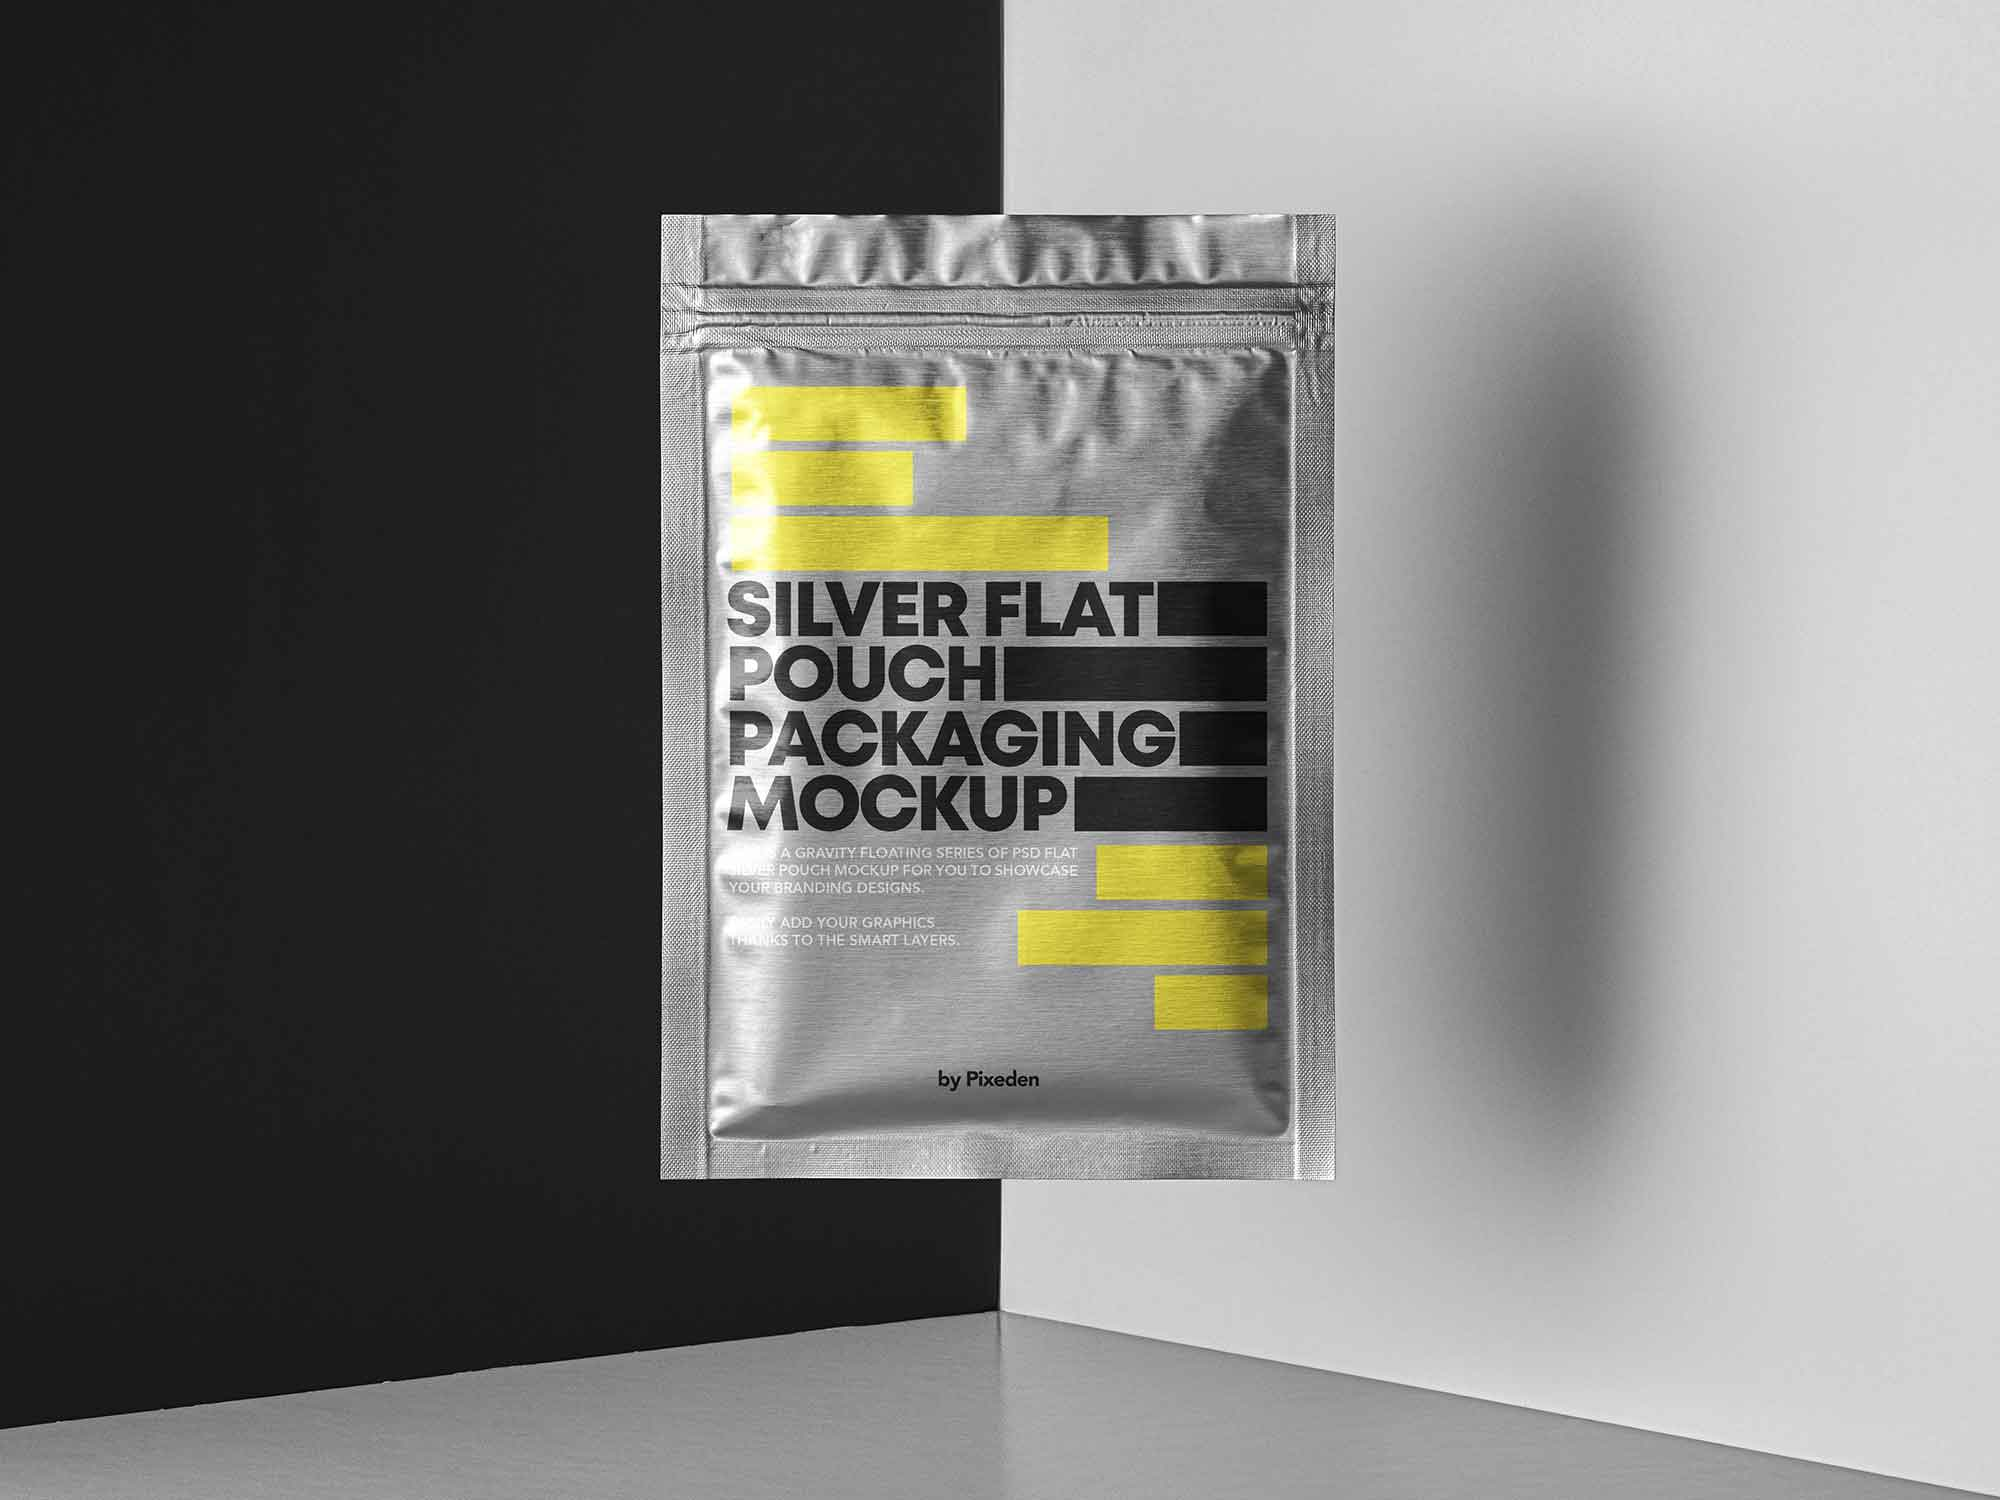 Flat Pouch Packaging Mockup